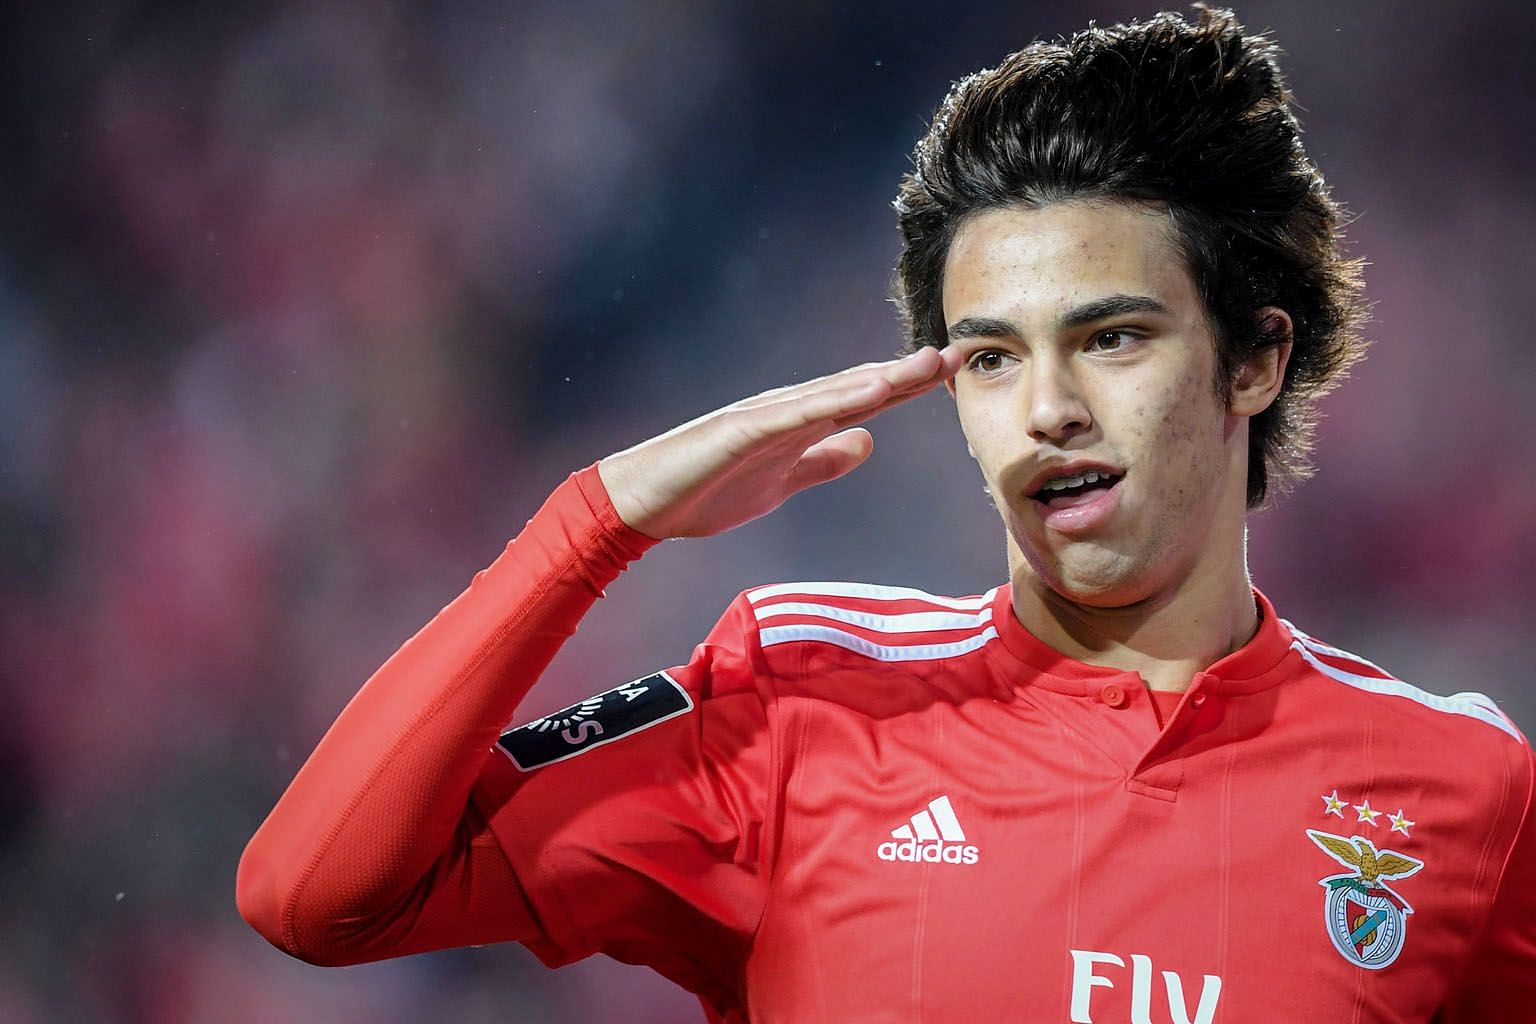 Benfica's Portuguese midfielder Joao Felix celebrating after scoring against Maritimo in the Portuguese Primeira Liga in April. Atletico want him as a replacement for Antoine Griezmann, who is set to join Barcelona. PHOTO: AGENCE FRANCE-PRESSE